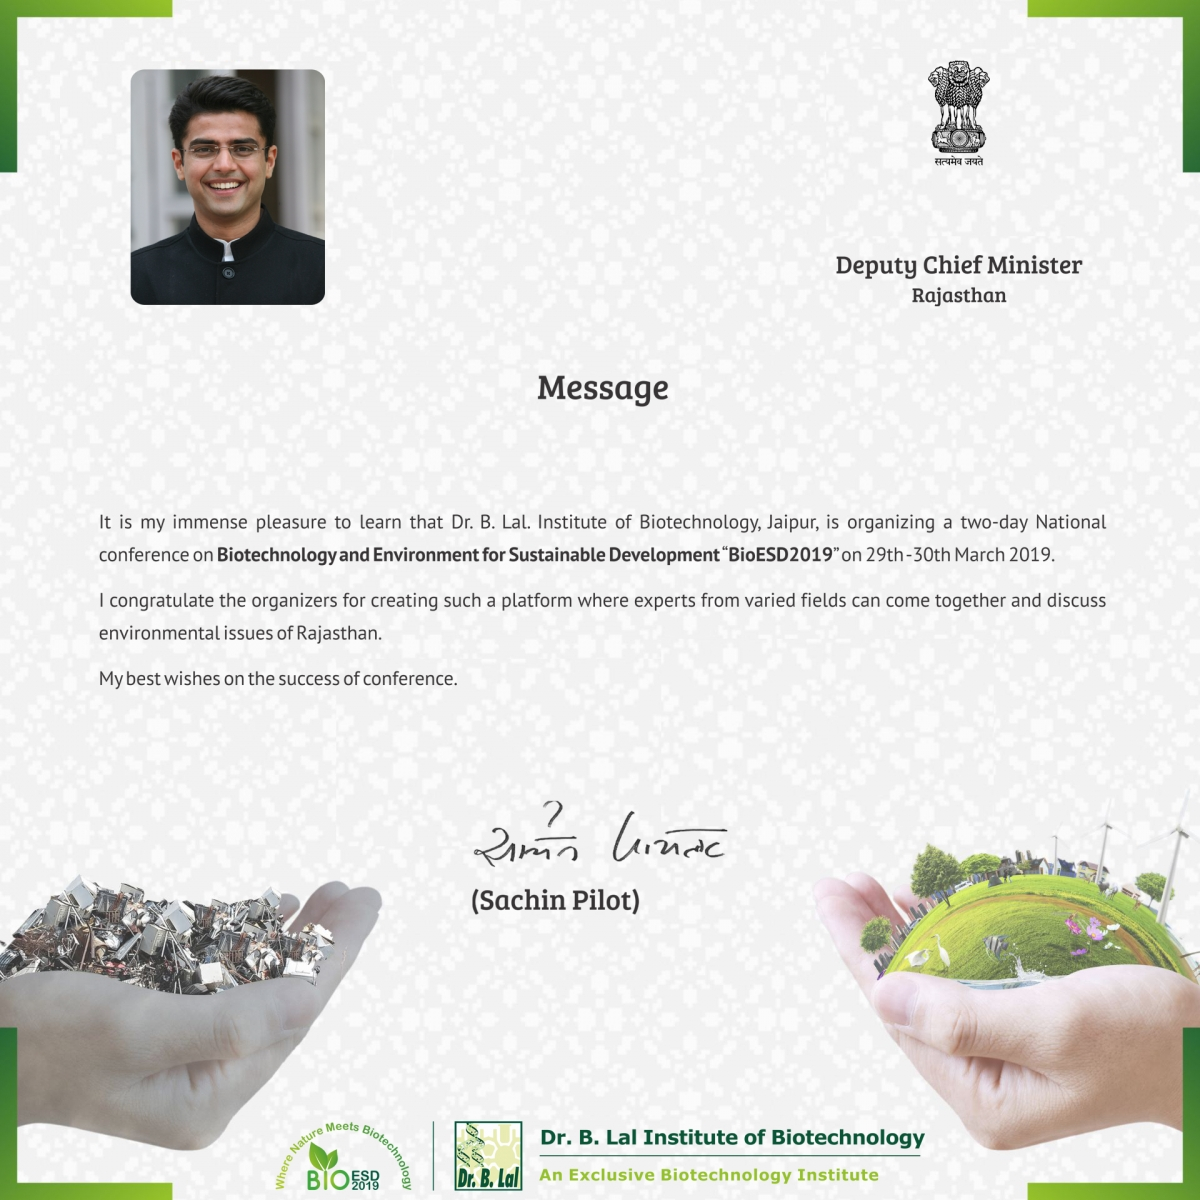 Sachin Pilot (Deputy Chief Minister, Rajasthan) | BioESD2019